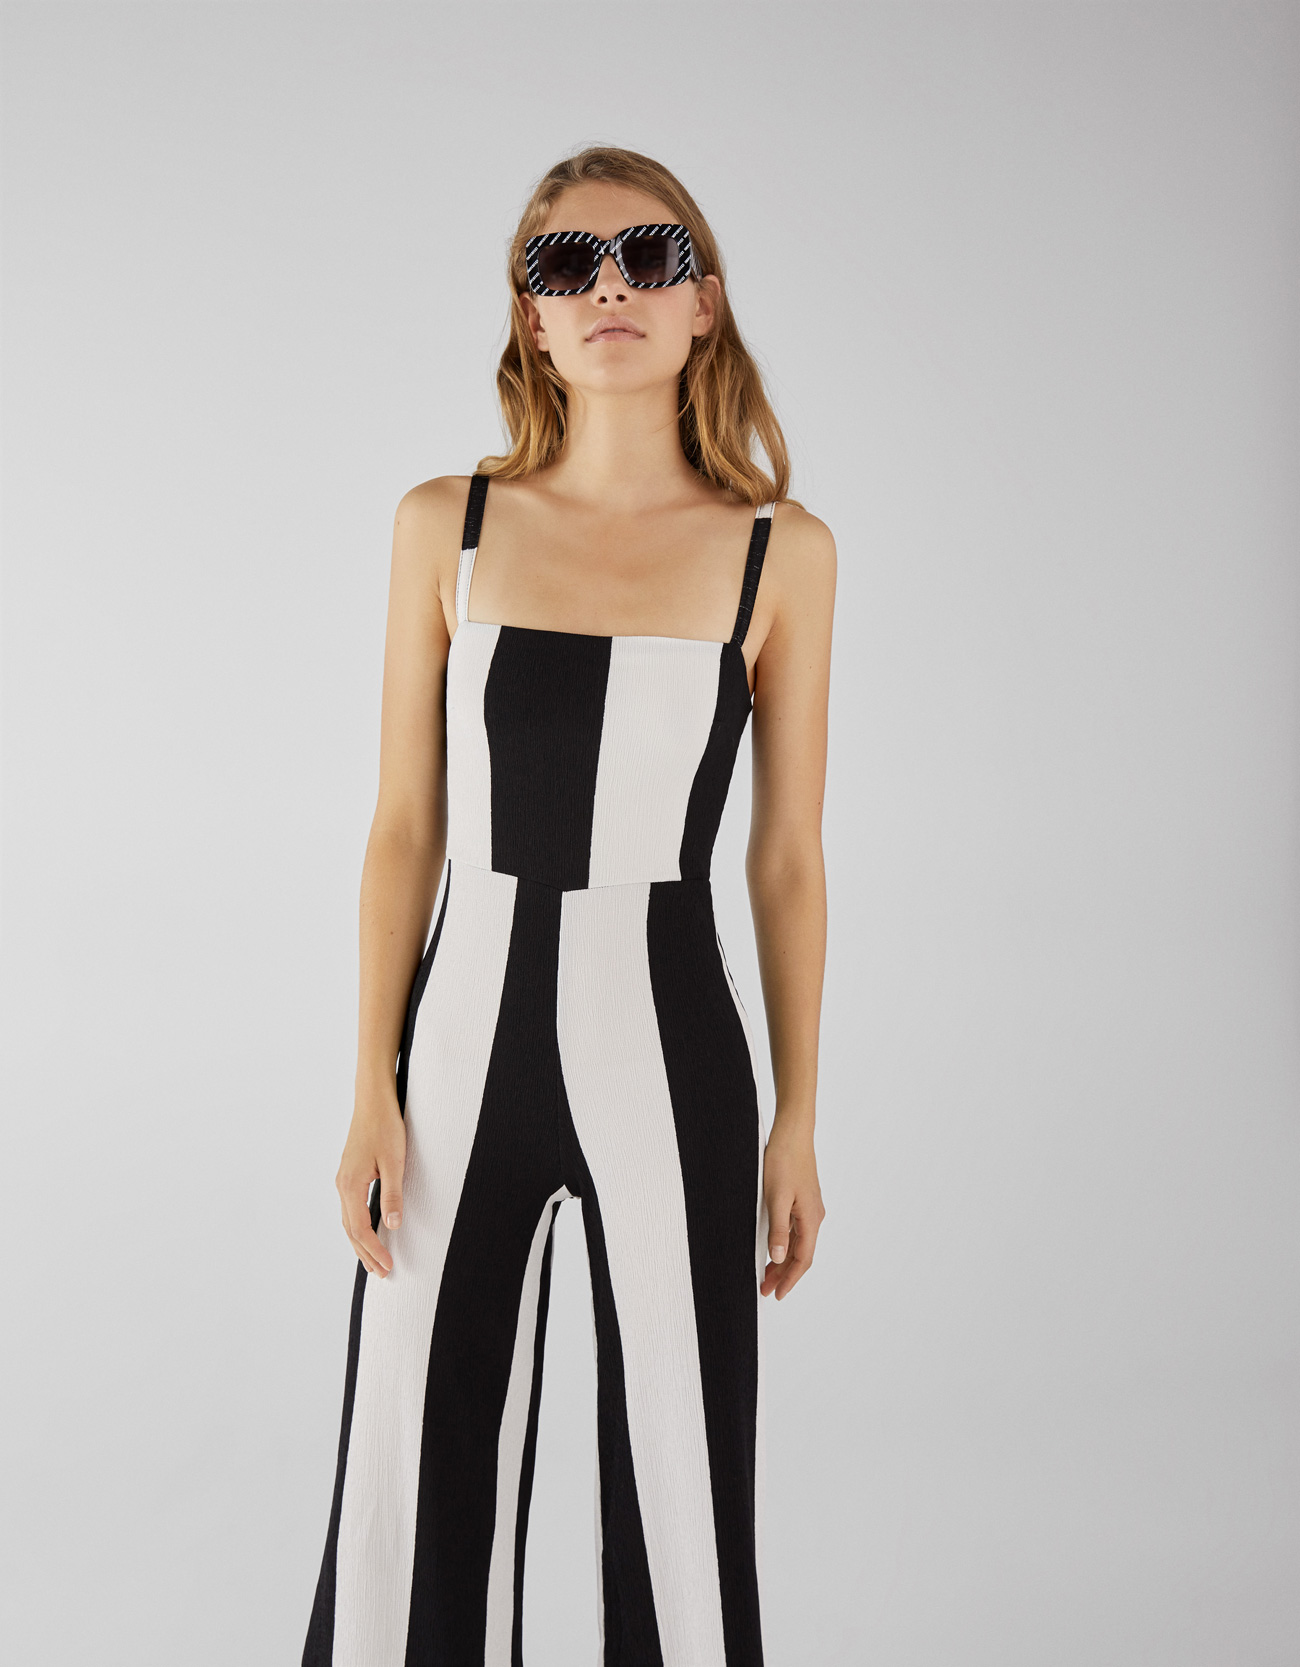 072a627504b0 Bershka Black And White Striped Jumpsuit